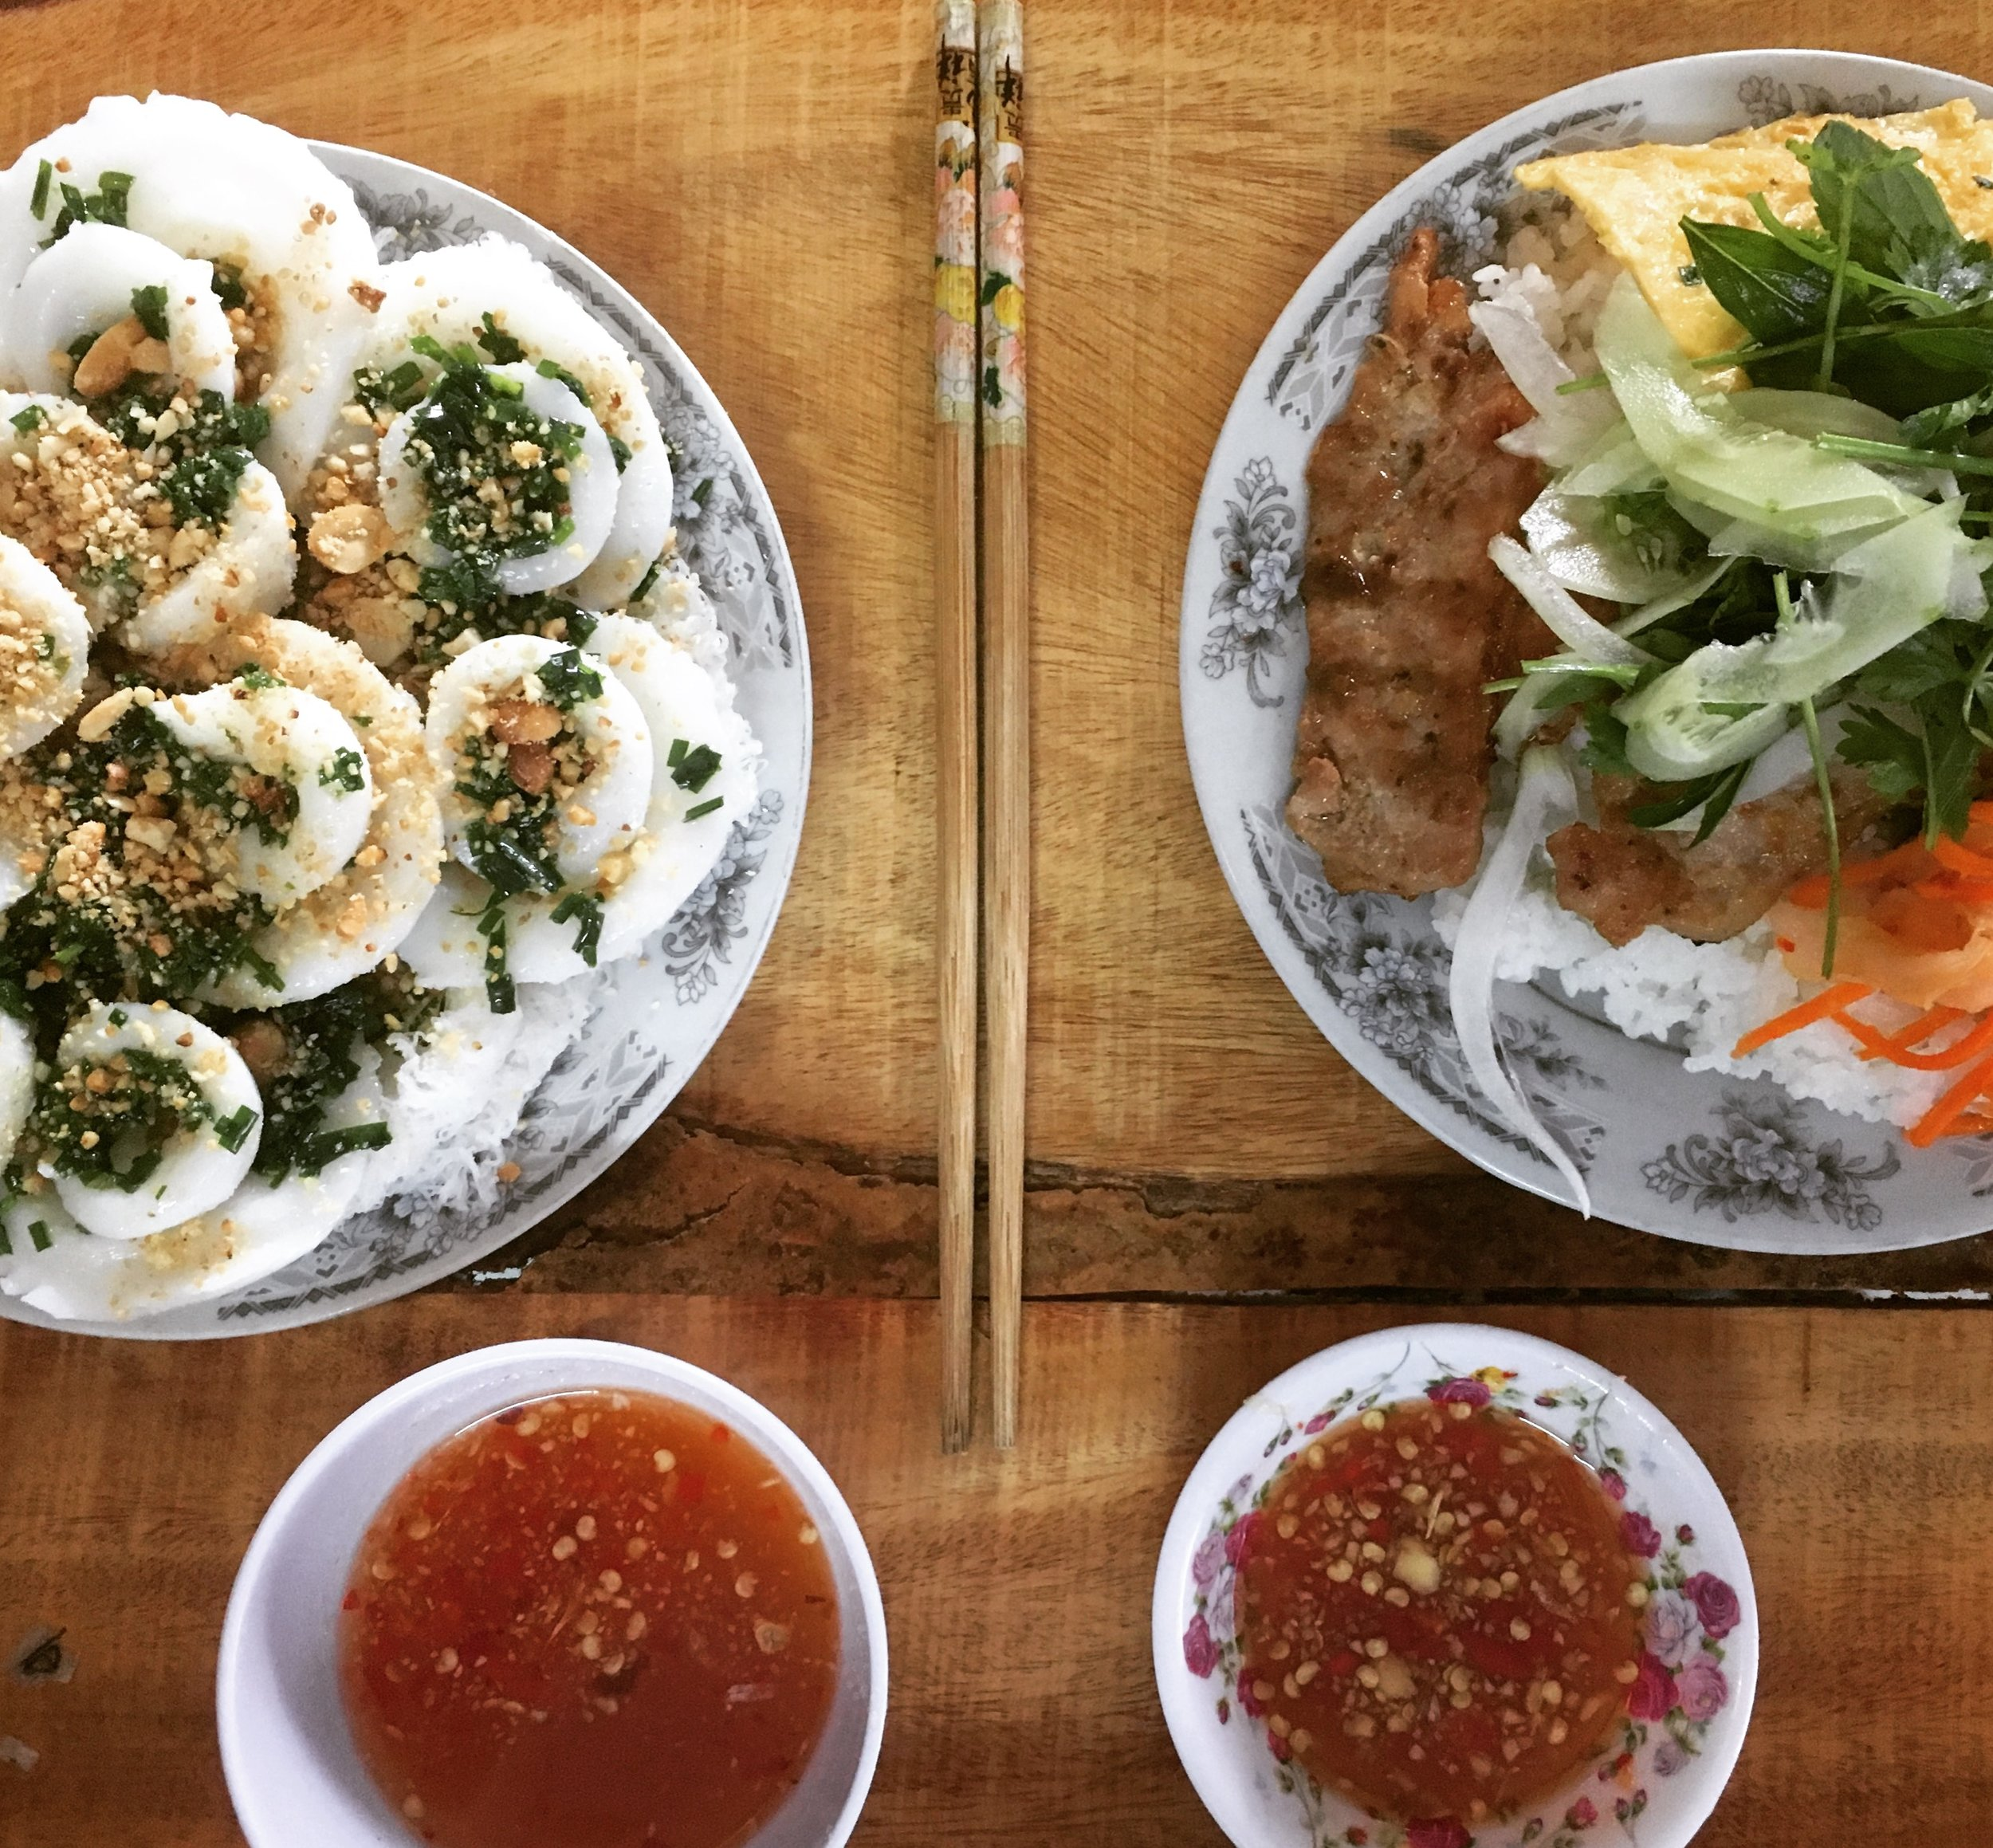 -Banh Boa - Steamed rice powder and water, with peanuts, fish sauce, chilli, spring onion and garlic with crispy shallots and coriander, dipped in a sweet chilli sauce which were so good and a local delicacy apparently.